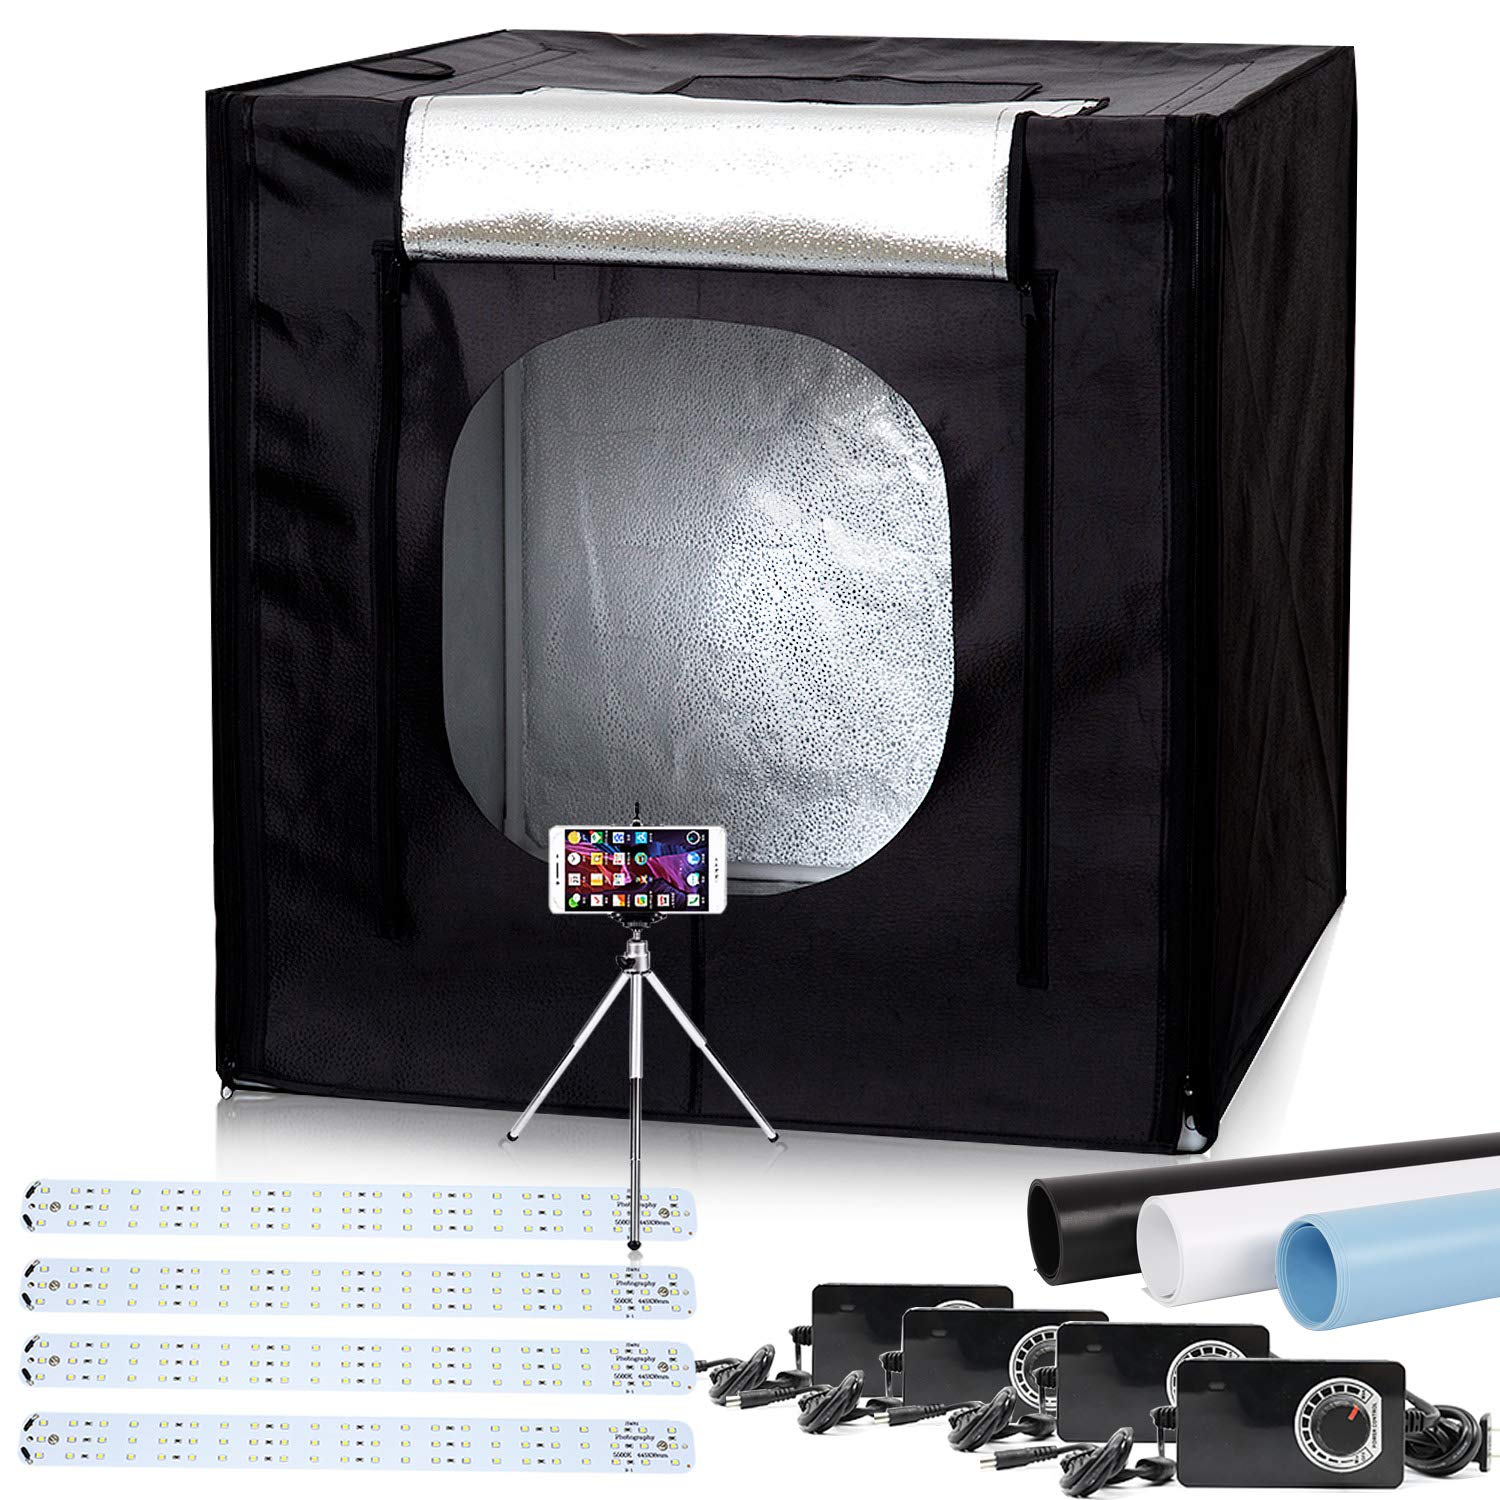 40''x40''x40'' LED Large Photography Shooting Tents 384pcs 5500K Lights Cube Box Tents Kit for Photo Studio Lighting with Dimmer Adapter,Mini Tripod and 3 Colors PVC Backgrounds in Carrying Bag by Konseen